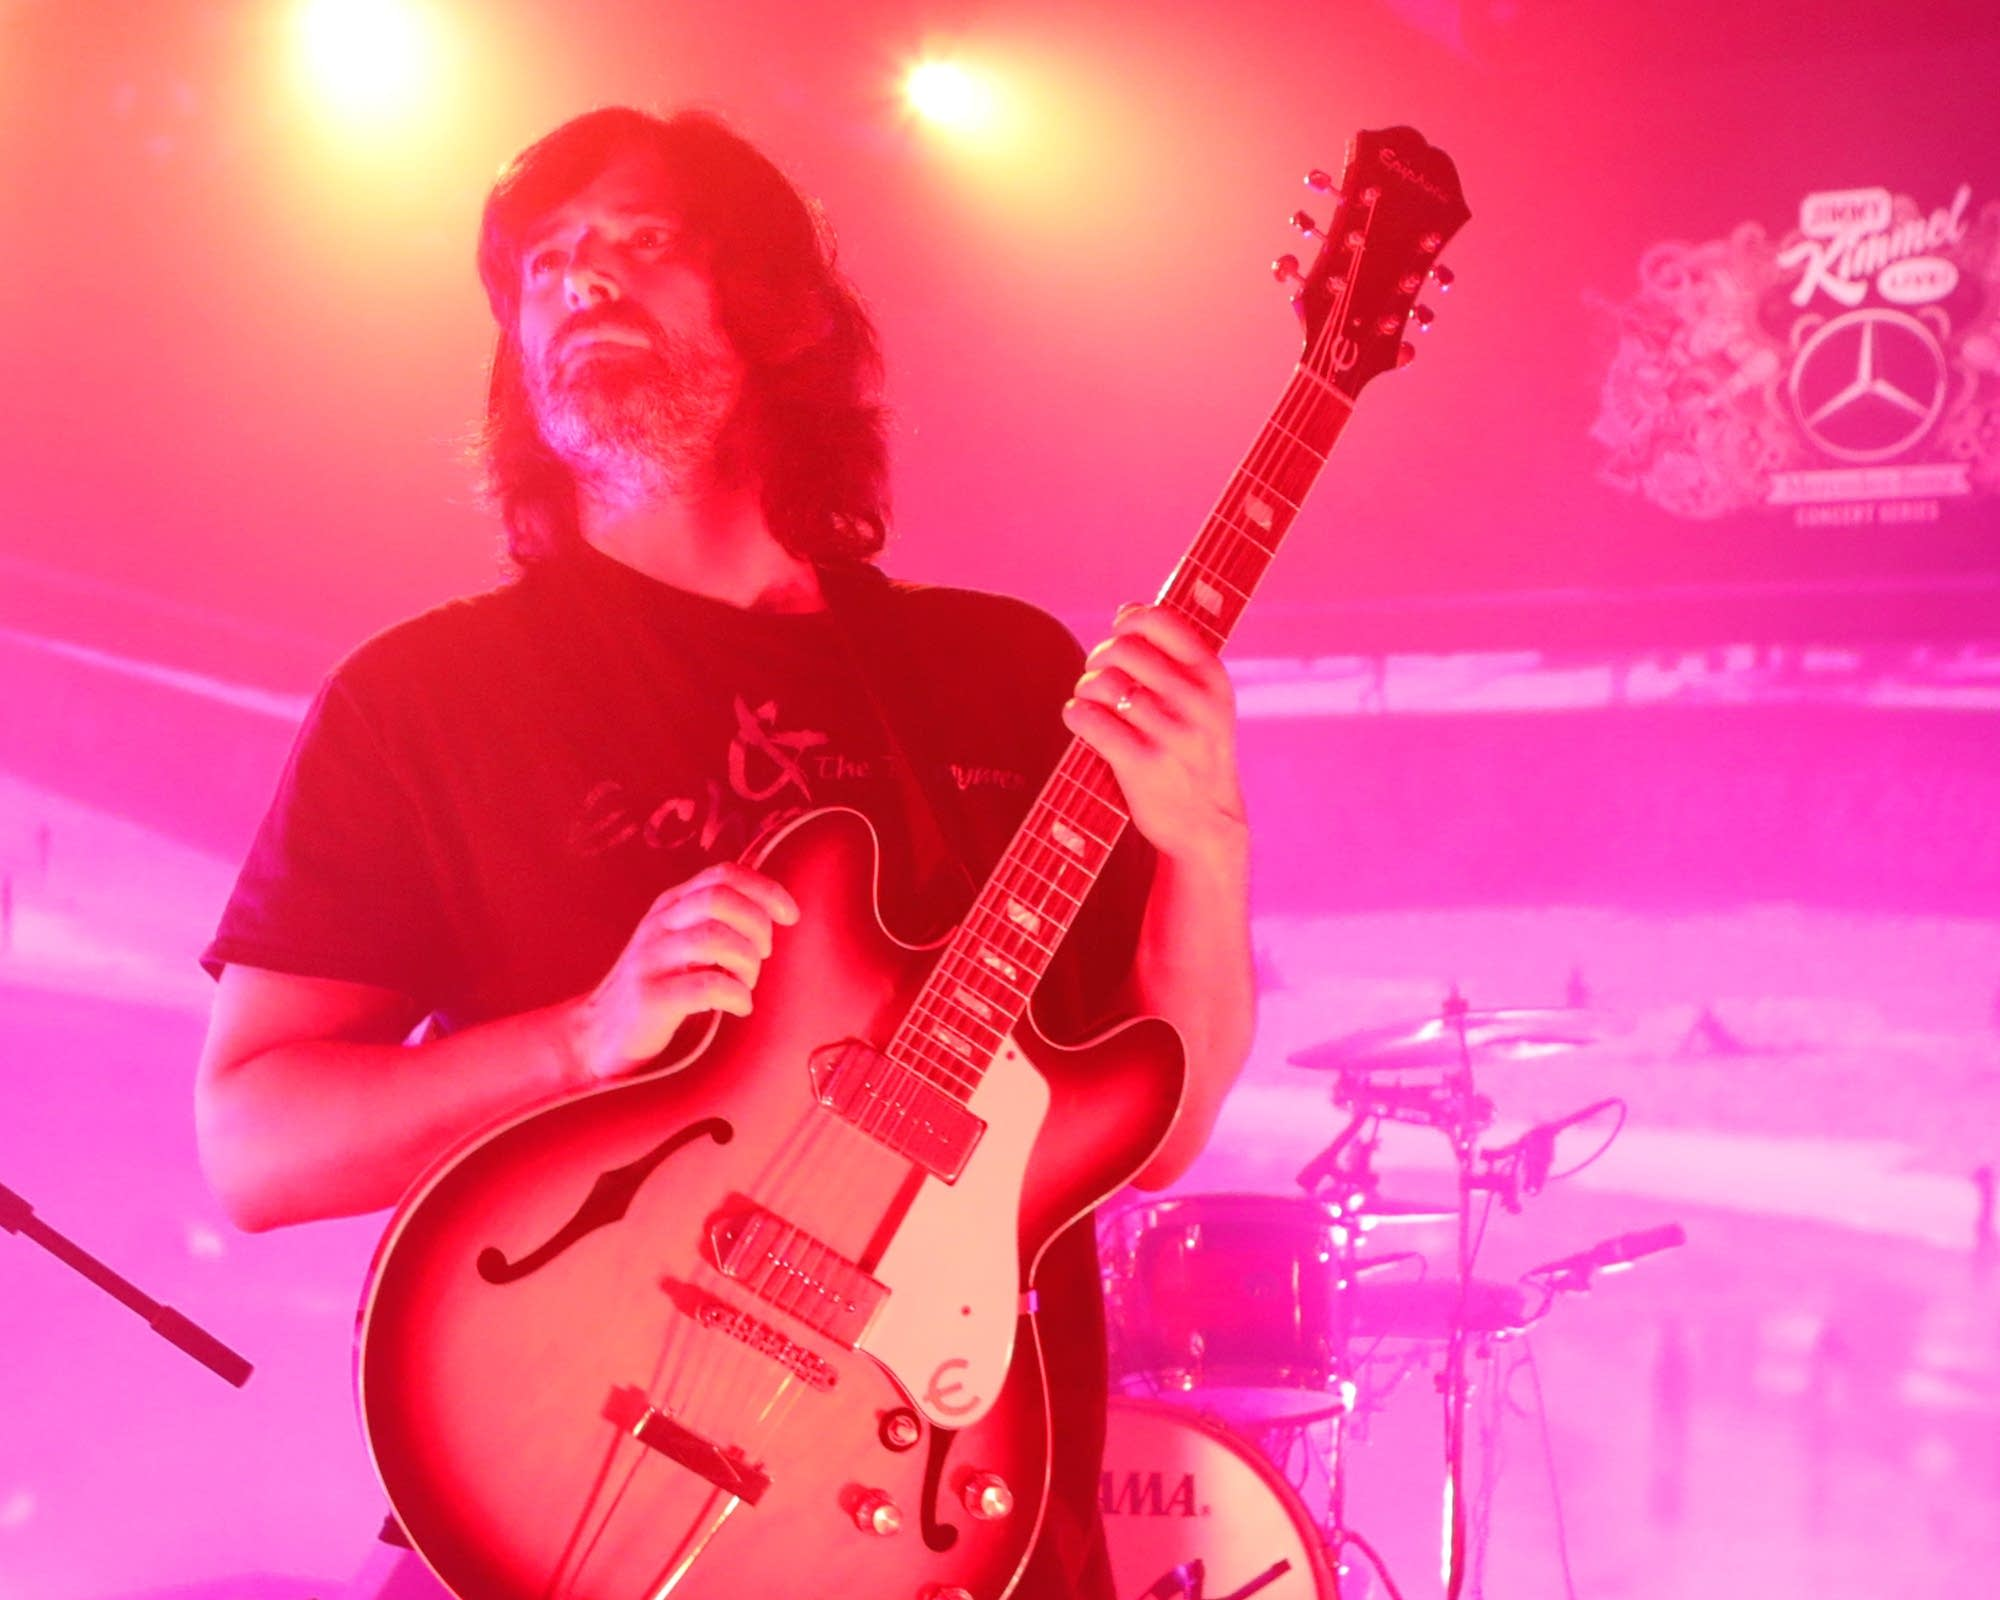 Pete Yorn performs on 'Jimmy Kimmel Live!' on ABC